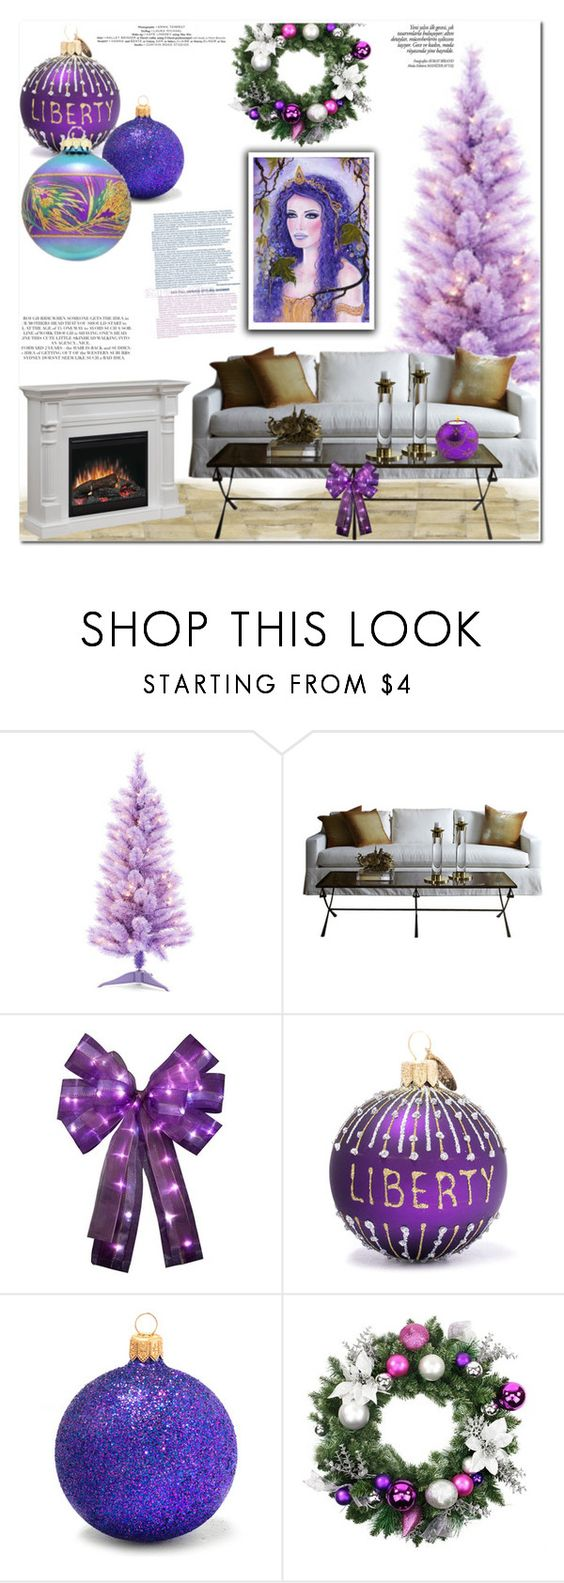 """""""Purple Xmas"""" by es-vee ❤ liked on Polyvore featuring interior, interiors, interior design, home, home decor, interior decorating and Rachel"""